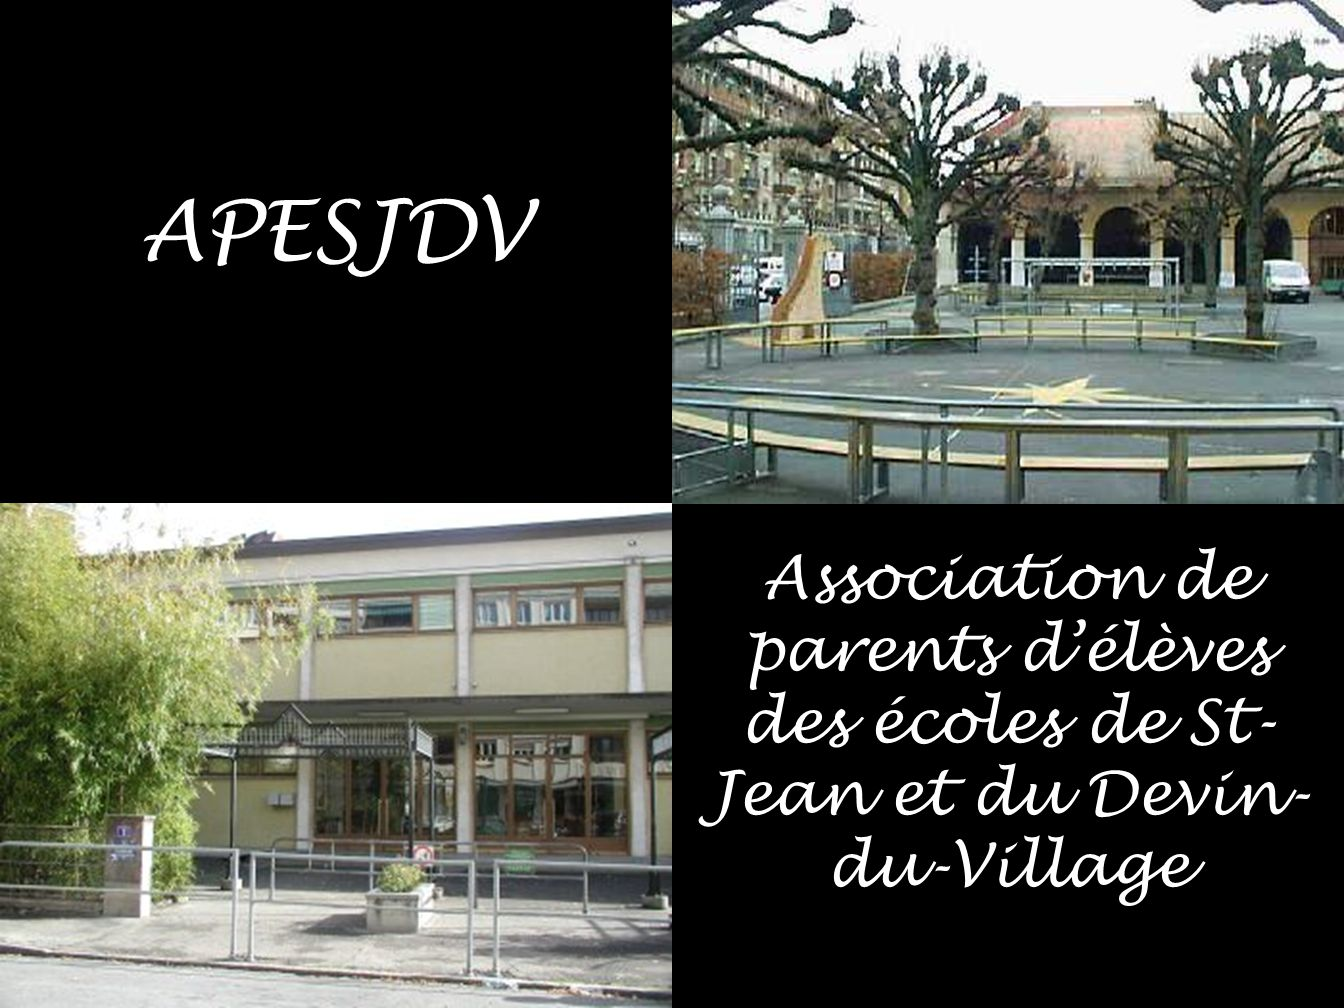 APESJDV Association de parents délèves des écoles de St- Jean et du Devin- du-Village